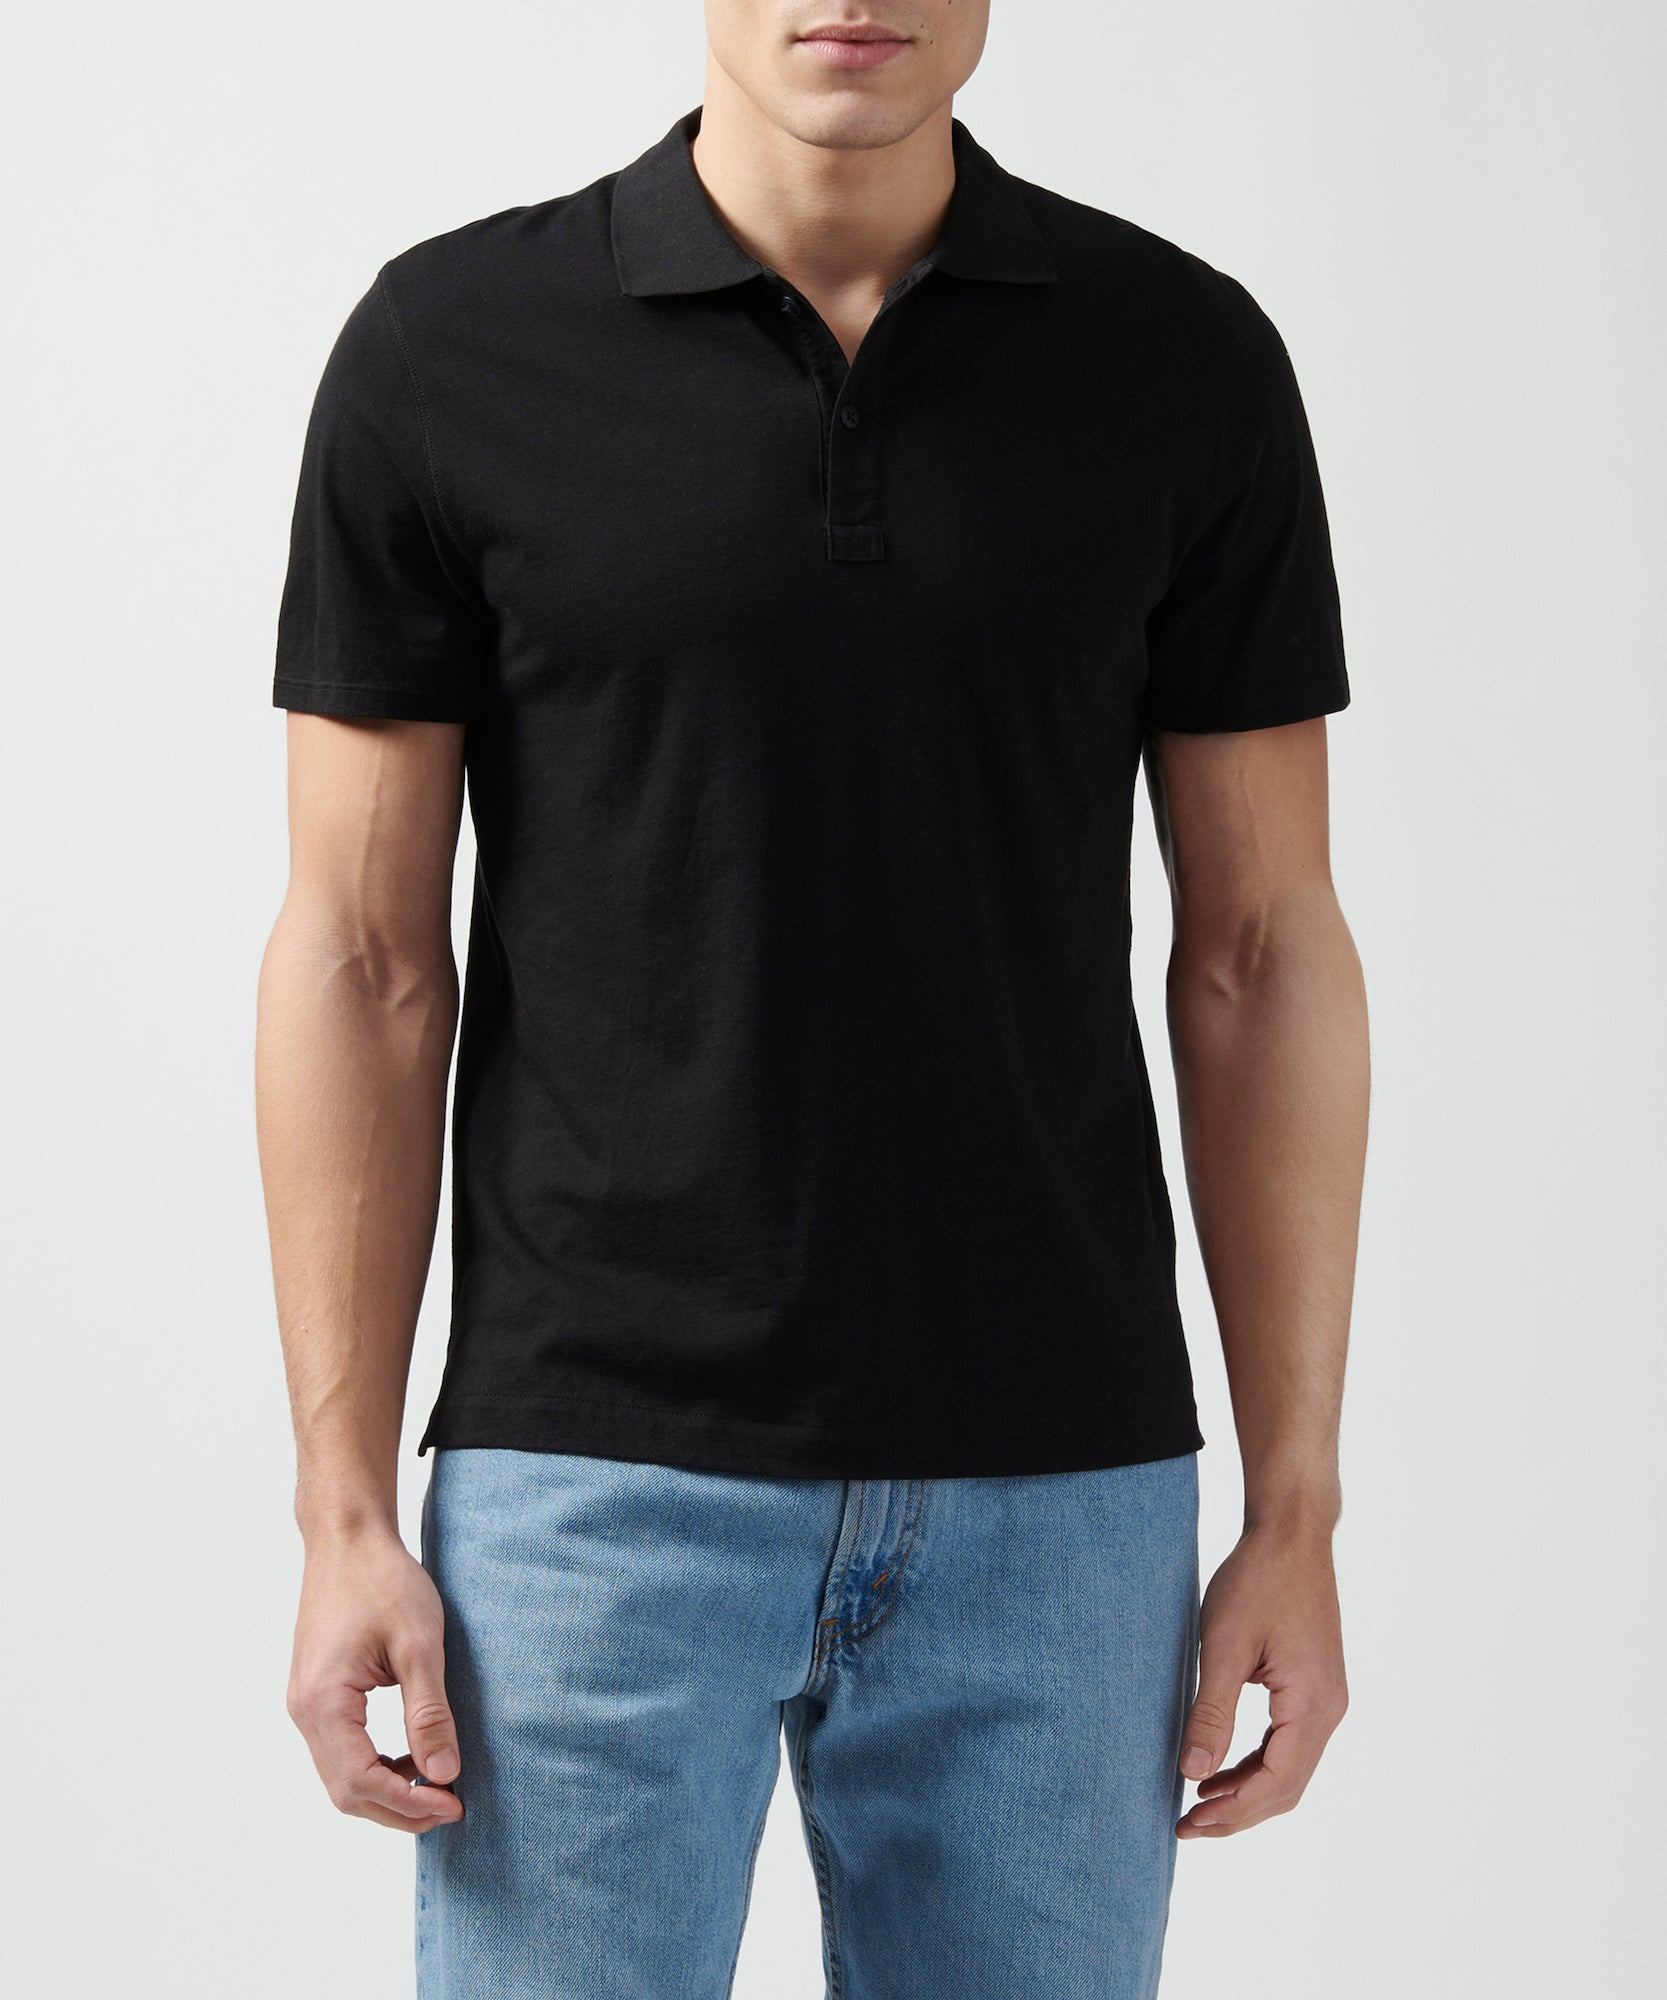 Black Classic Jersey Short Sleeve Polo - Men's Polo Shirt by ATM Anthony Thomas Melillo